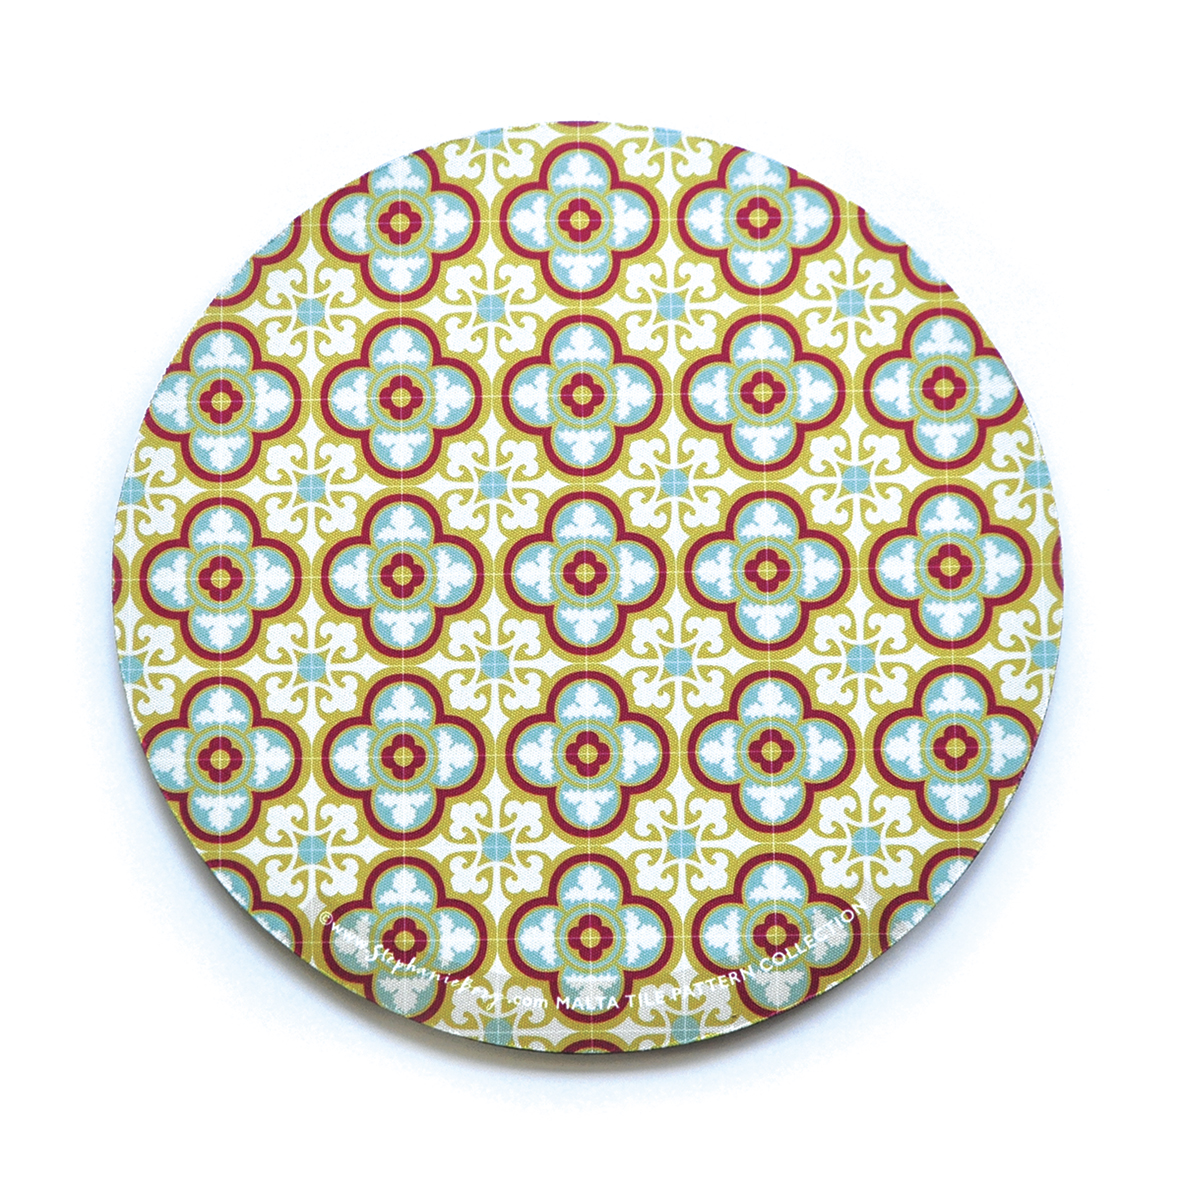 Mousepad with Maltese Tile Patterns, pattern no.12